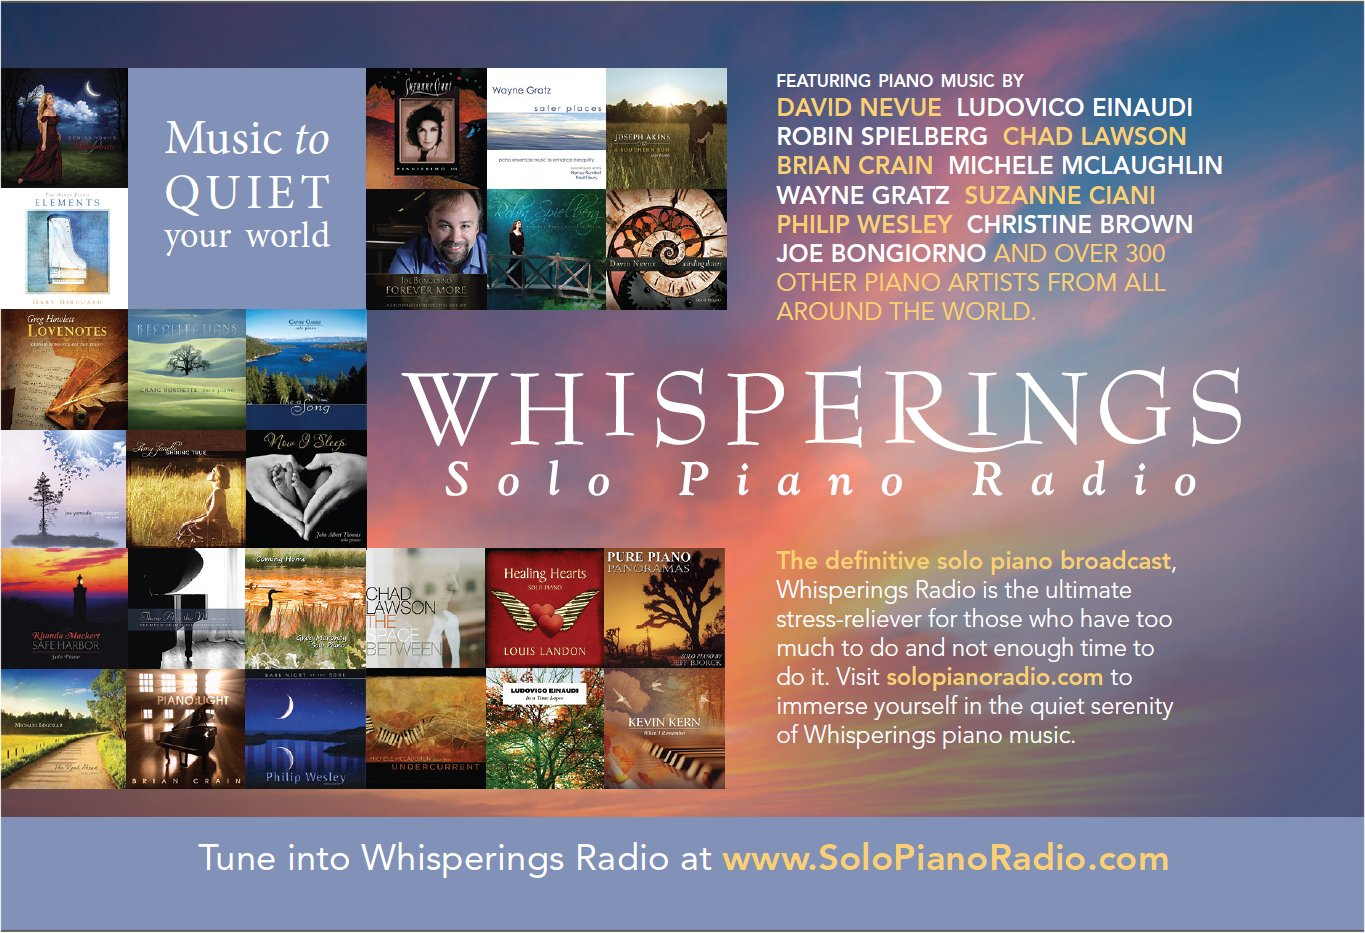 Whisperings: Solo Piano Radio is home to over 340 talented piano artists and broadcasts to tens of thousands of piano music fans from all over the world every day.